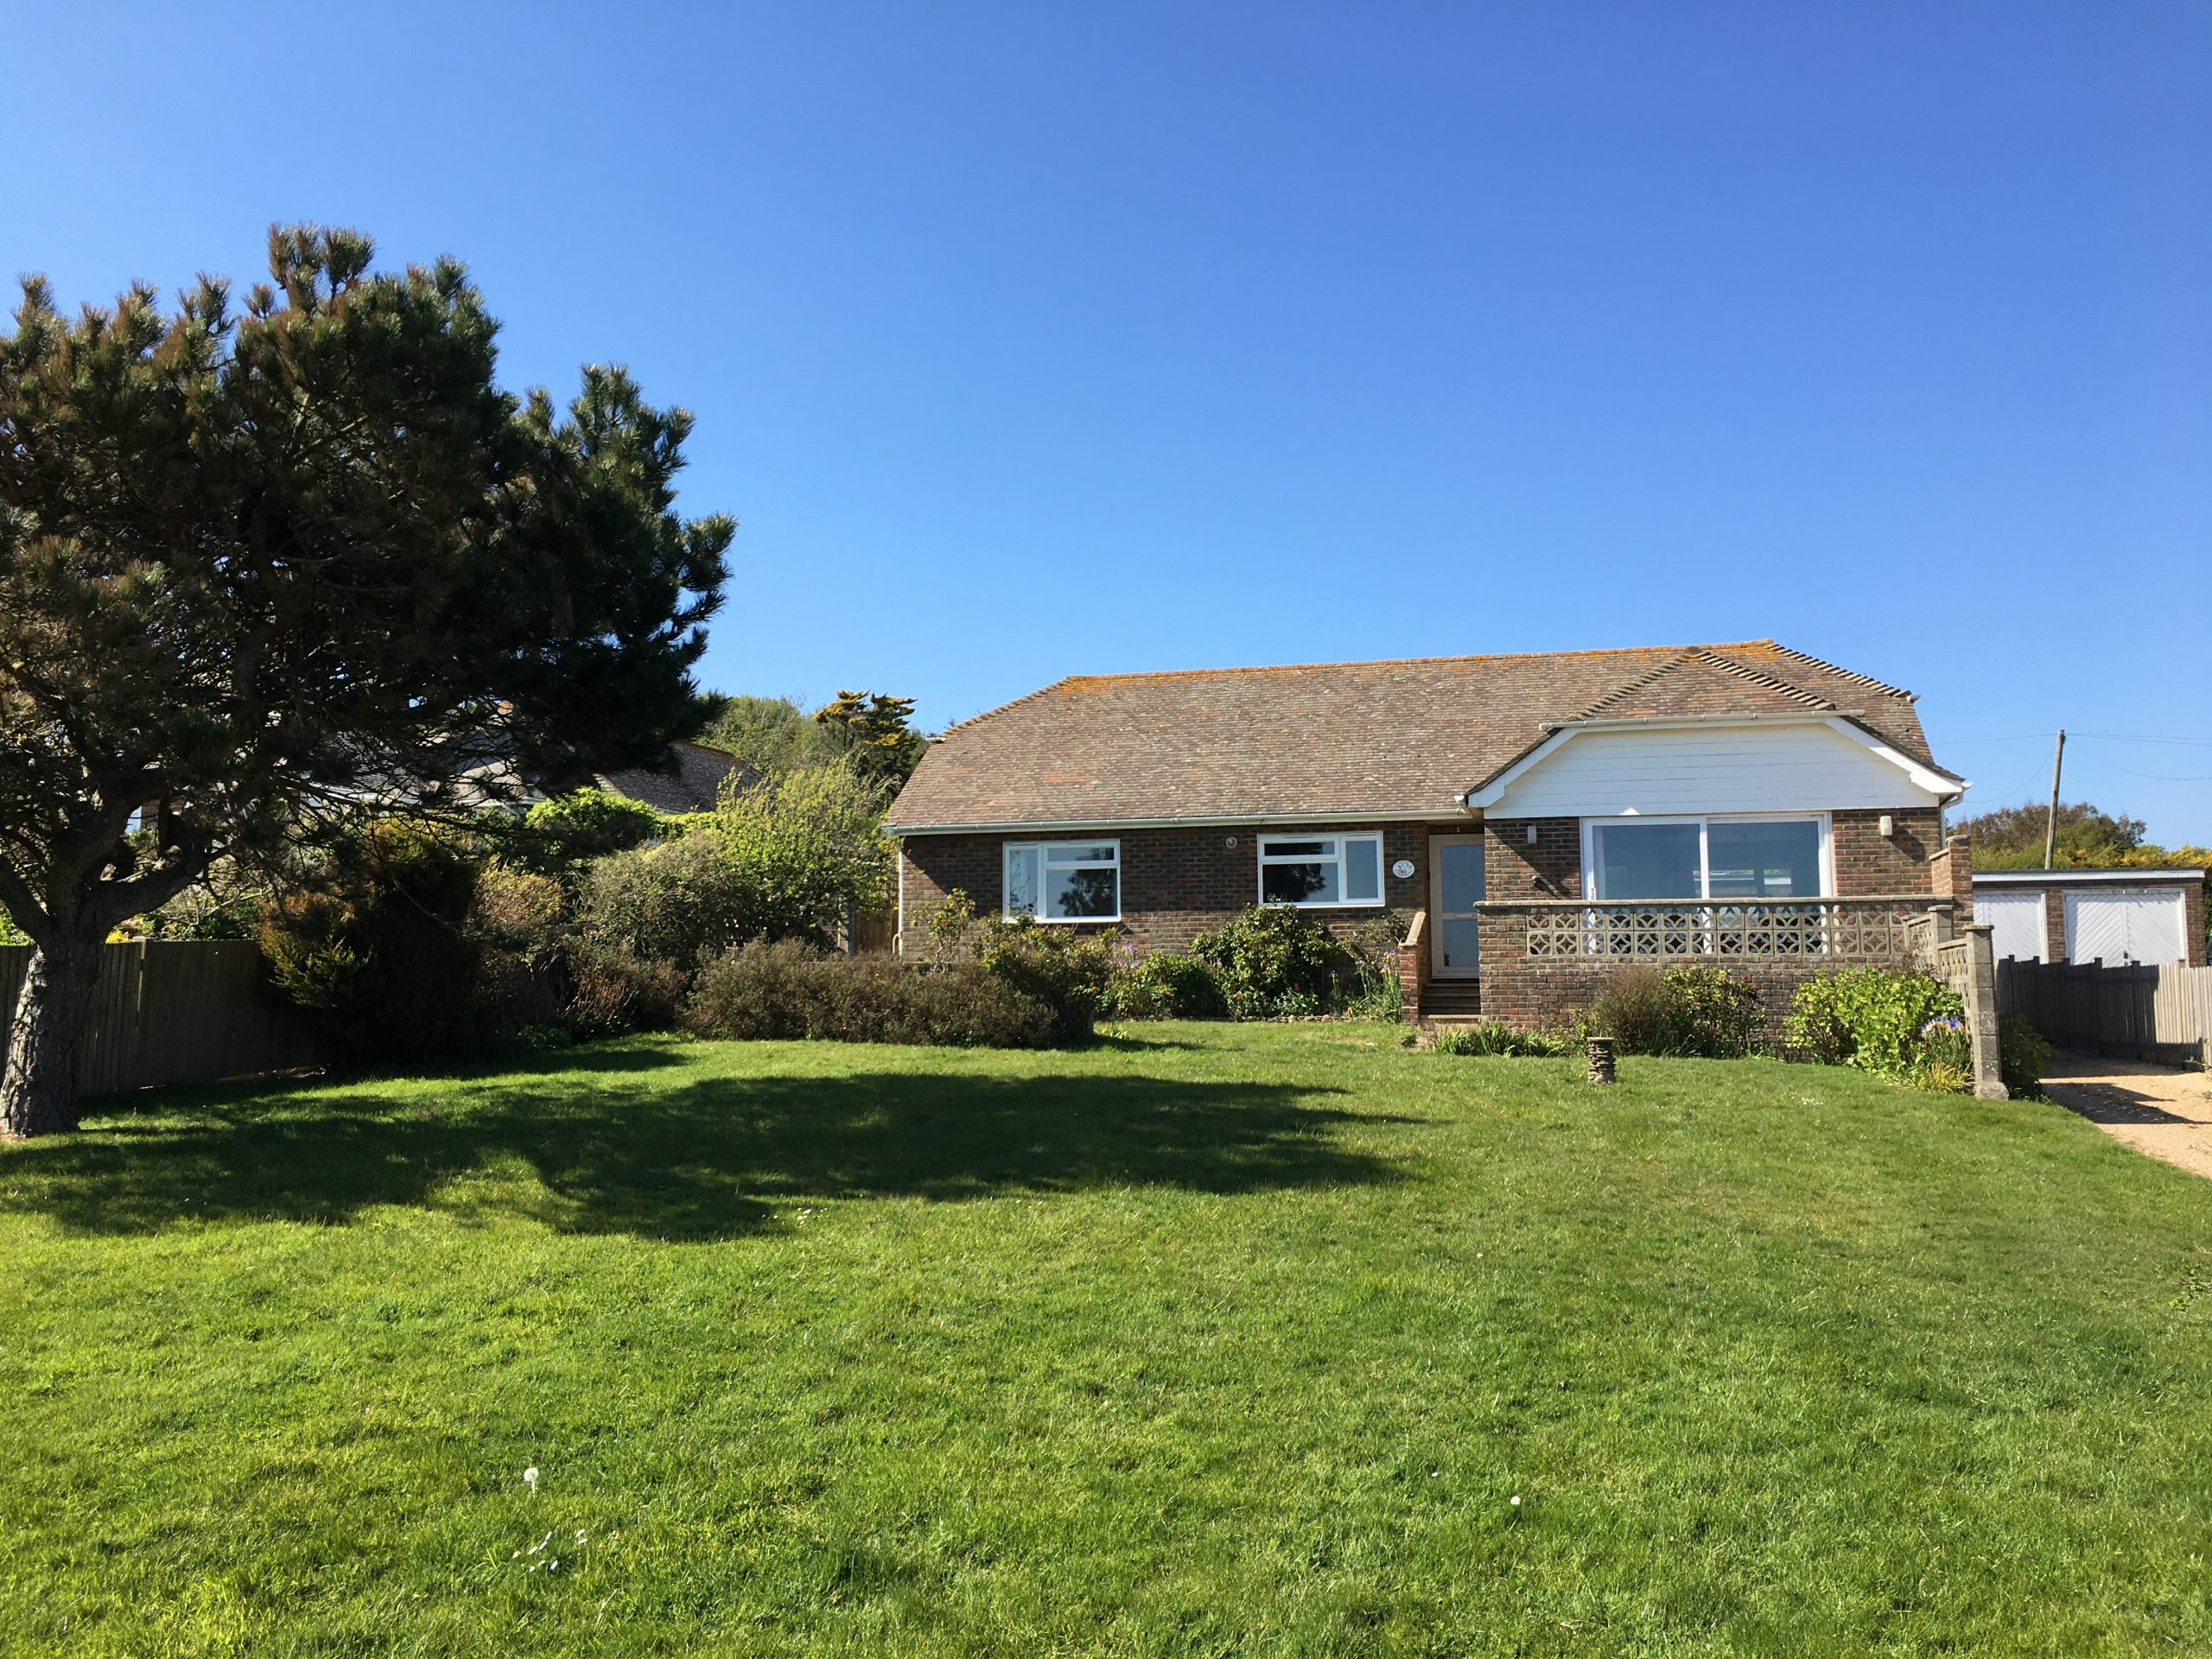 Fairlight – 4 Bedroom Detached Bungalow